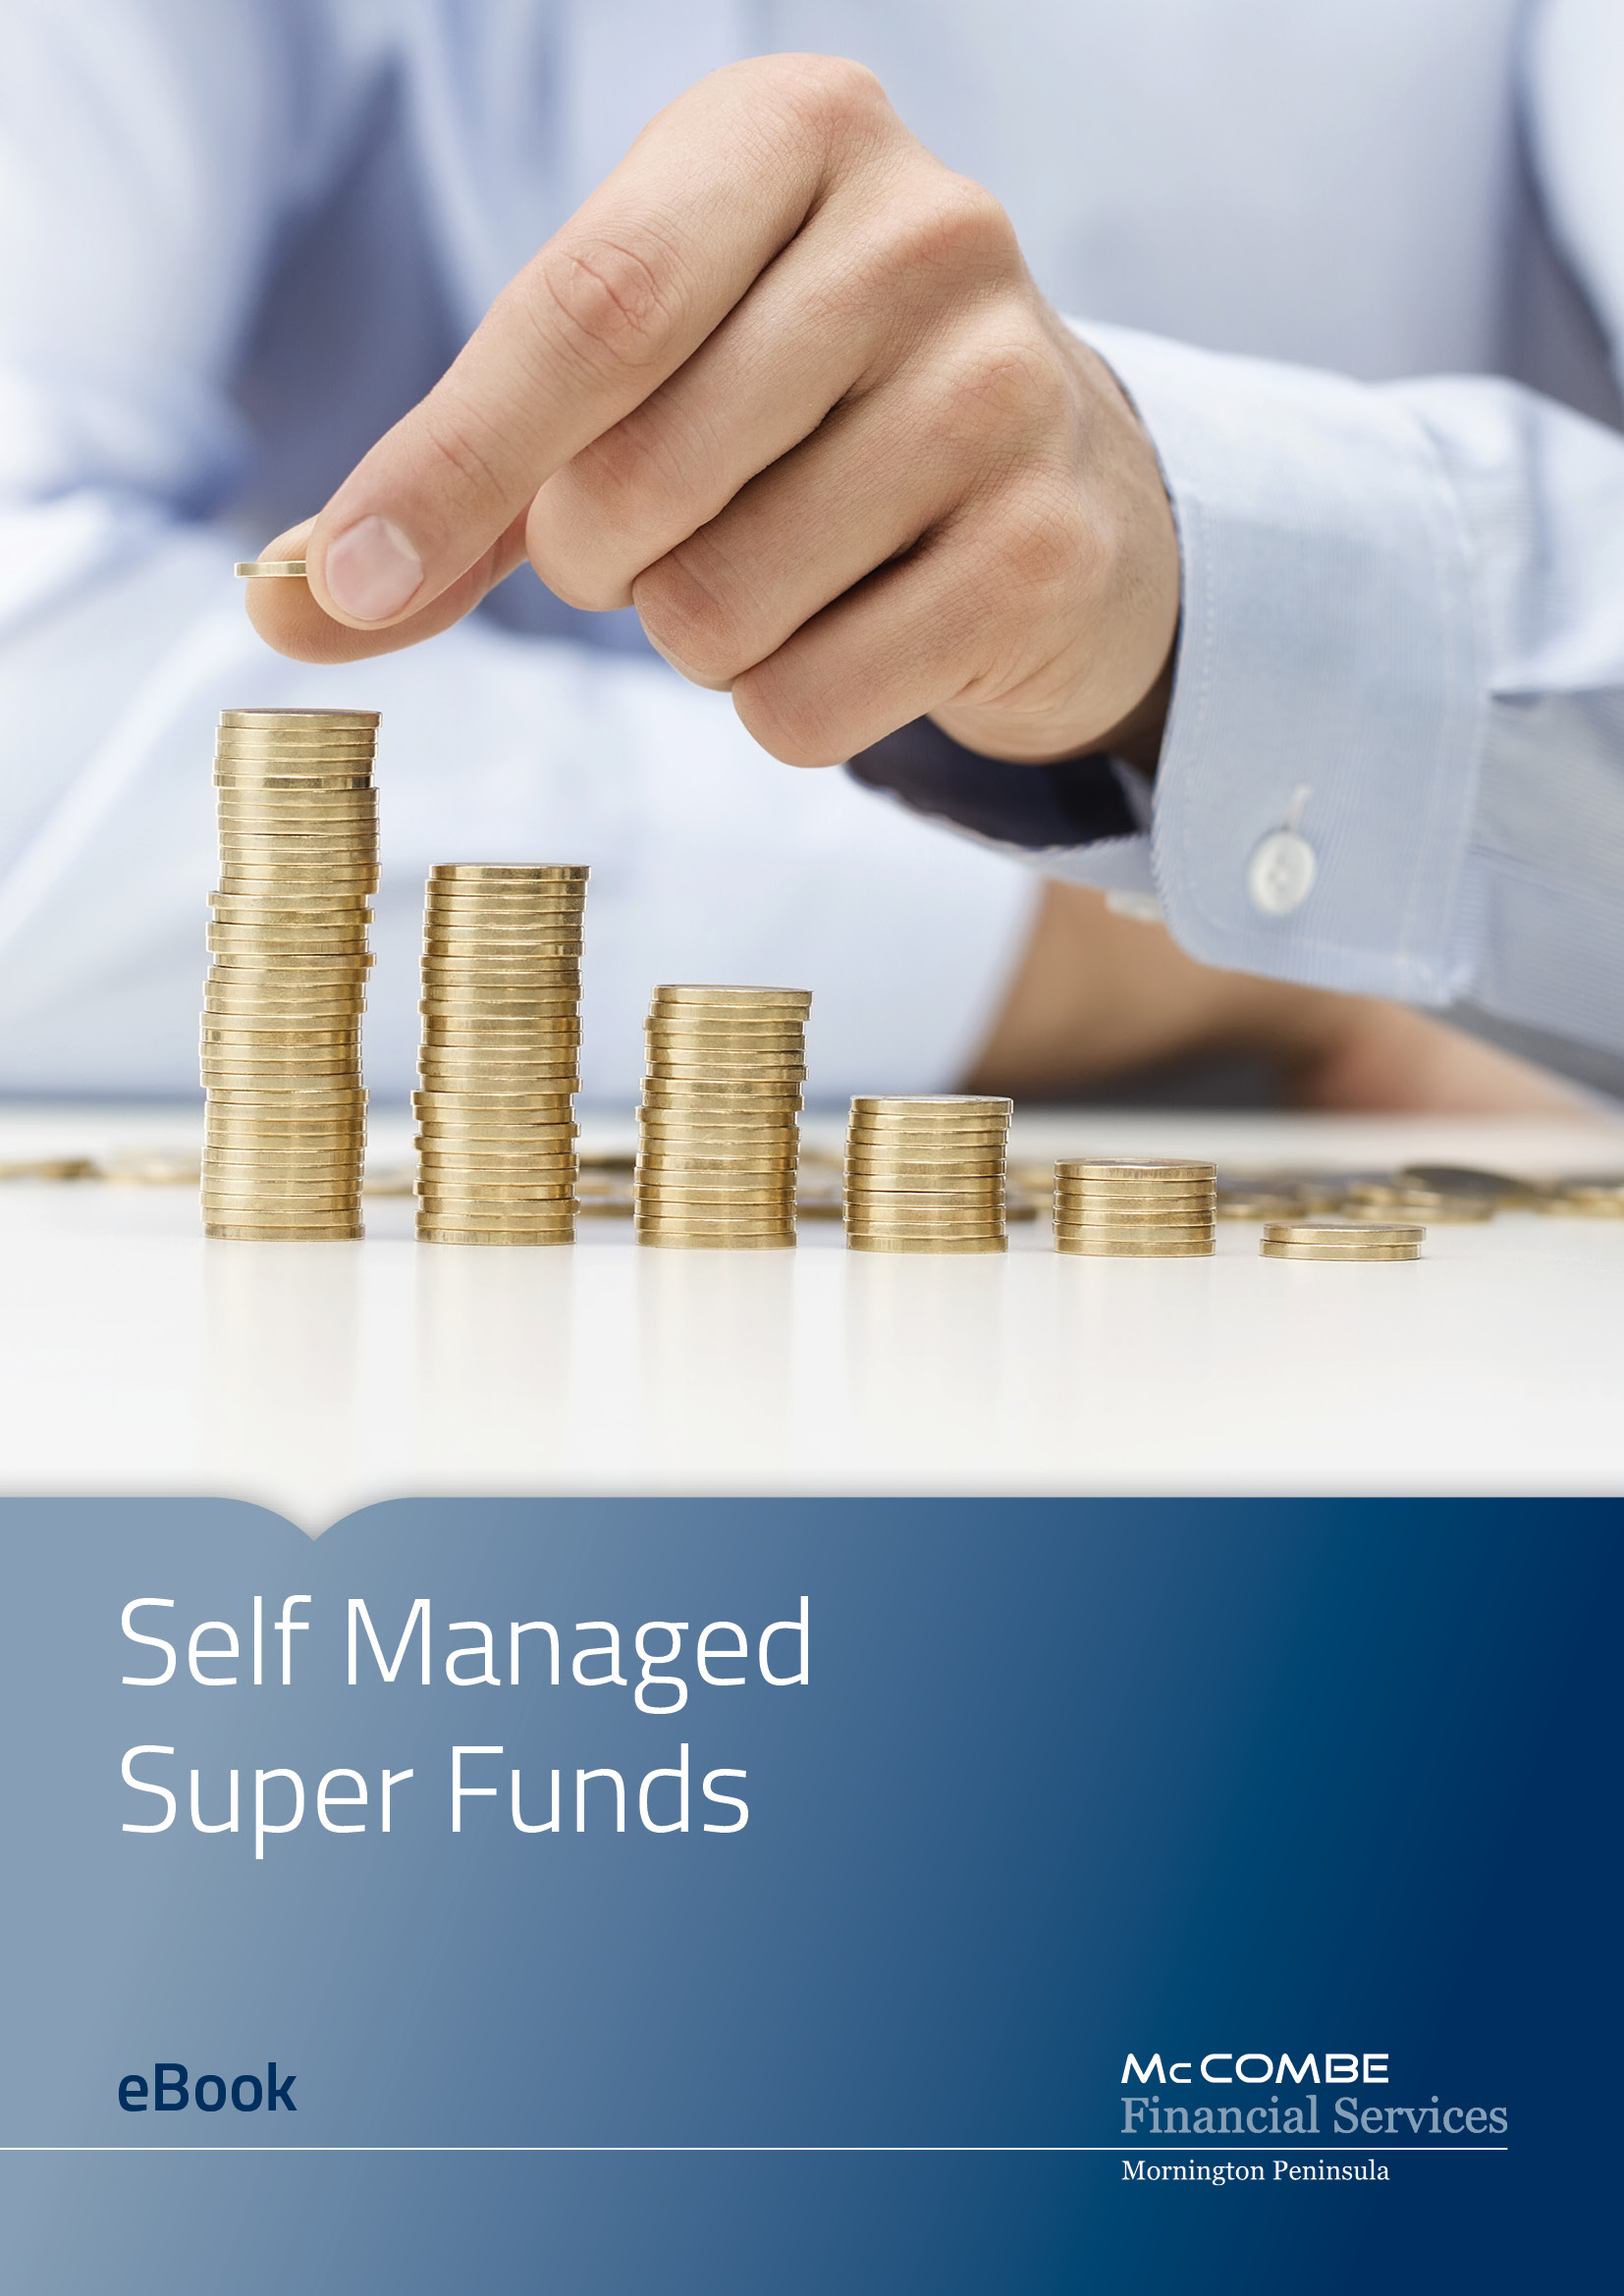 SMSF - Self Managed Super Funds